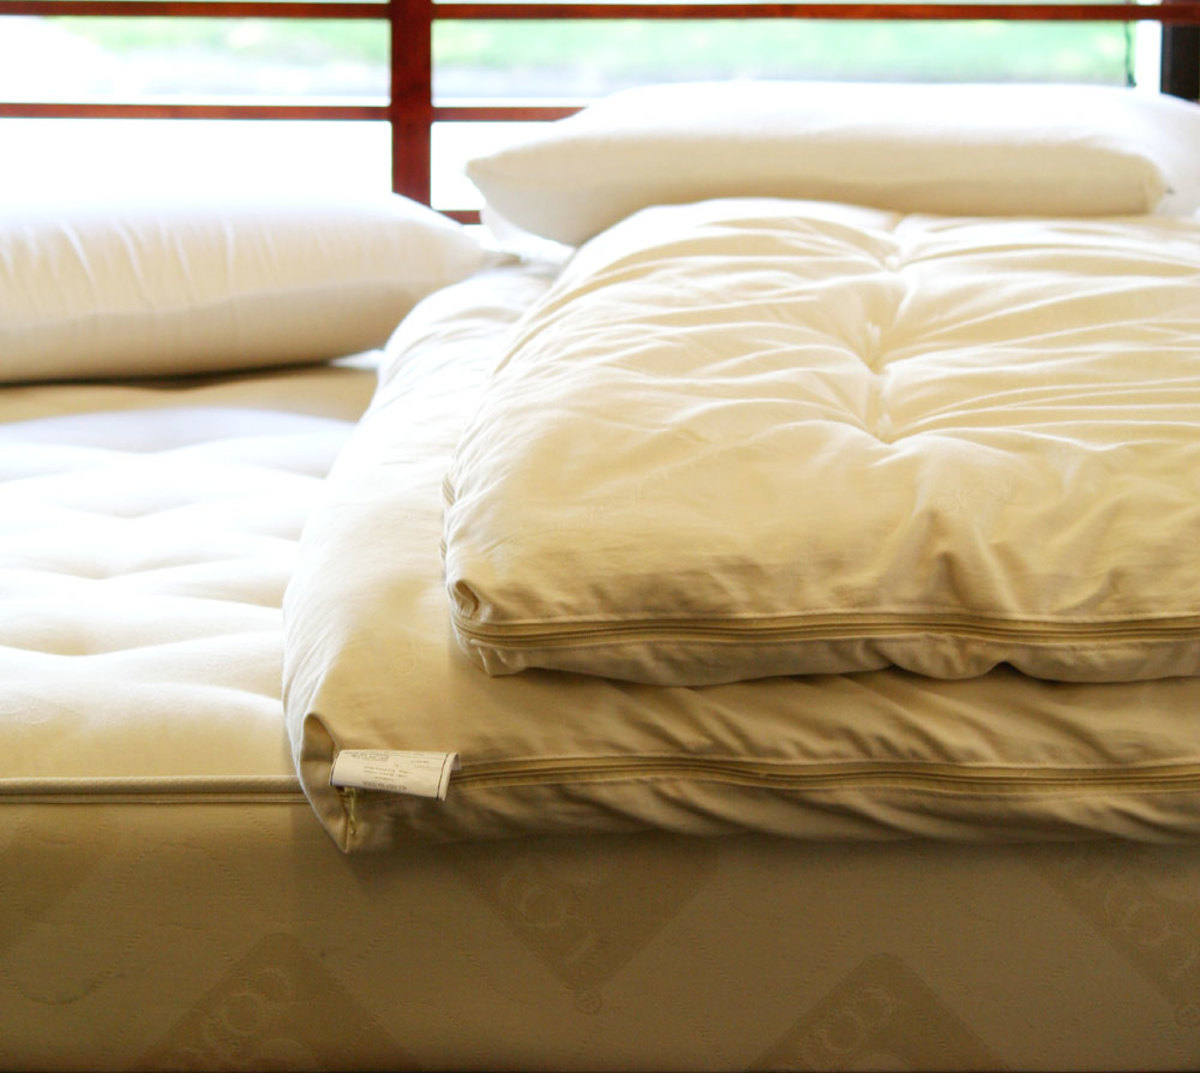 'Plush' Mattress with some comfort layers - add more with a topper.